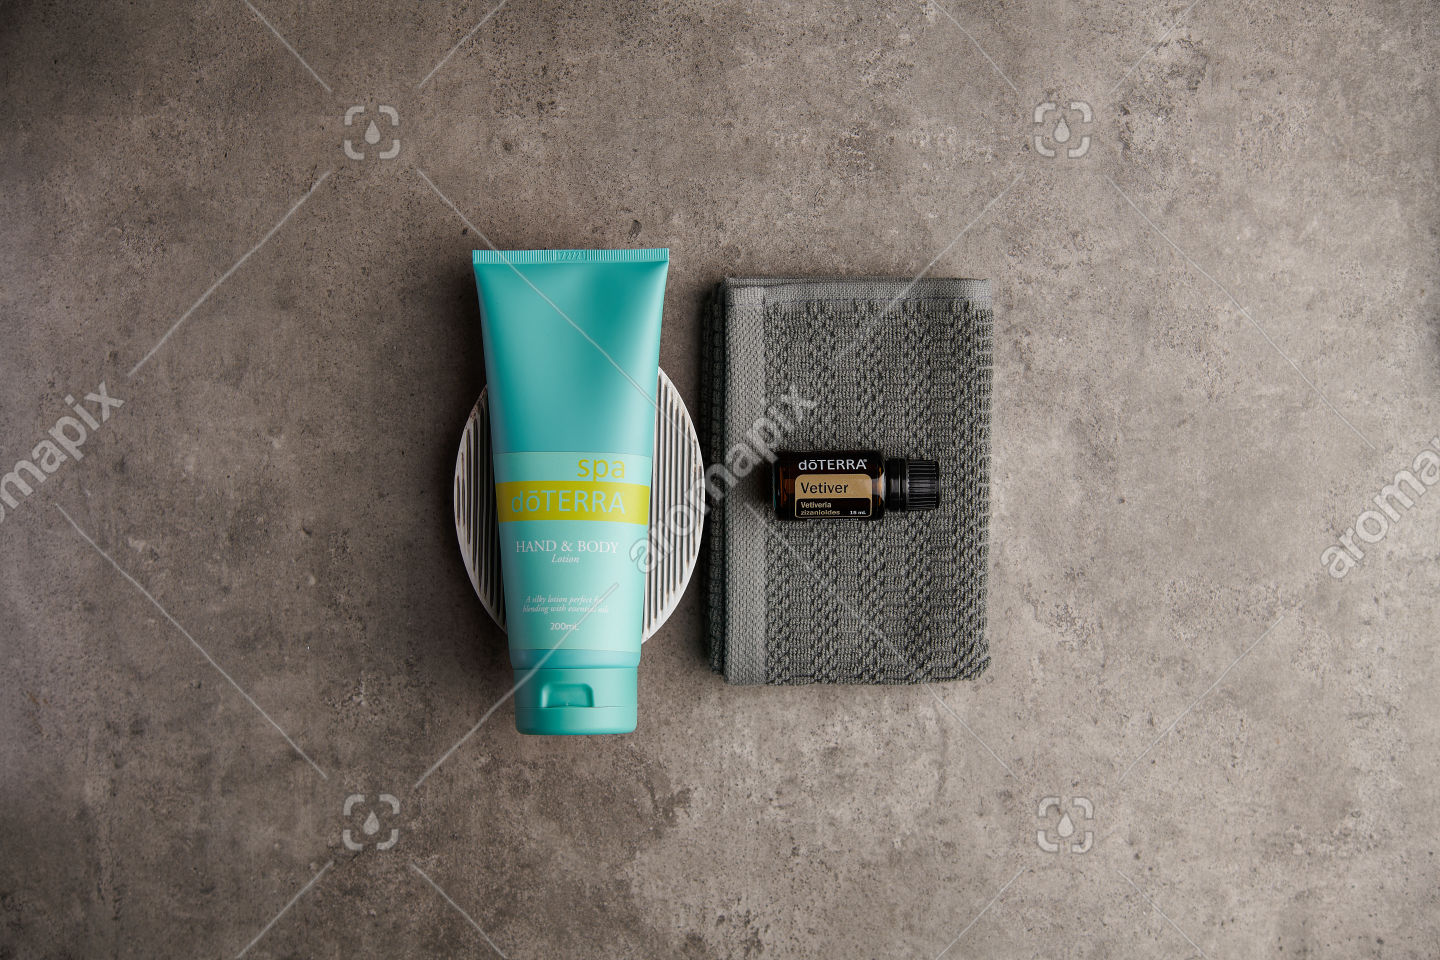 doTERRA Spa Hand and Body Lotion and Vetiver essential oil on stone